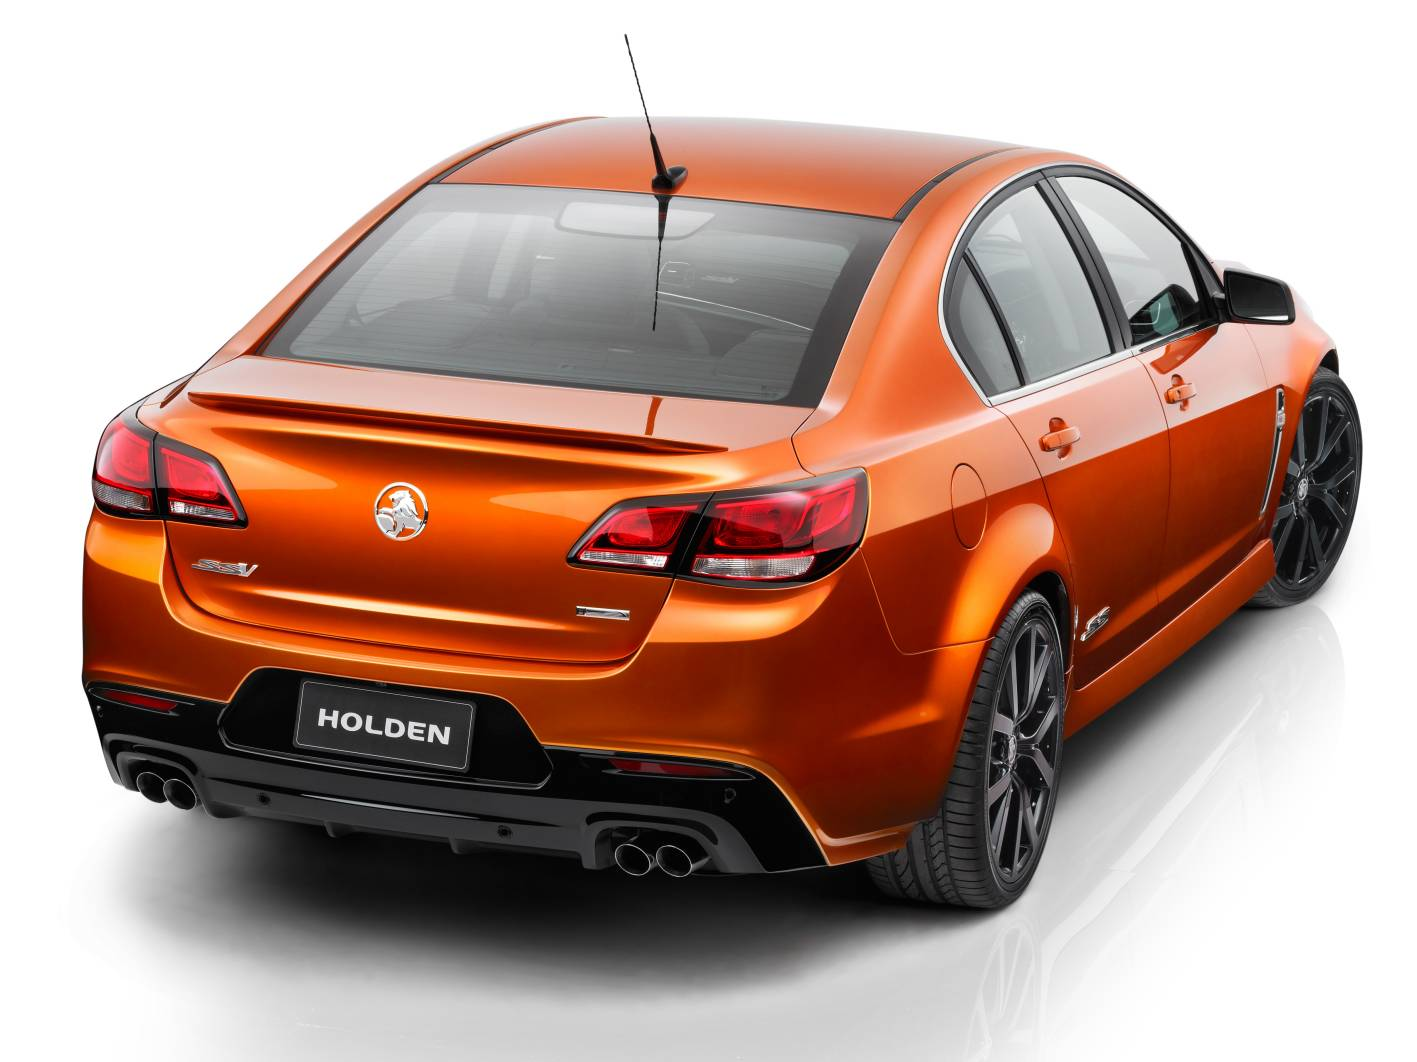 Holden Cars - News: SS V to feature 6.2L V8